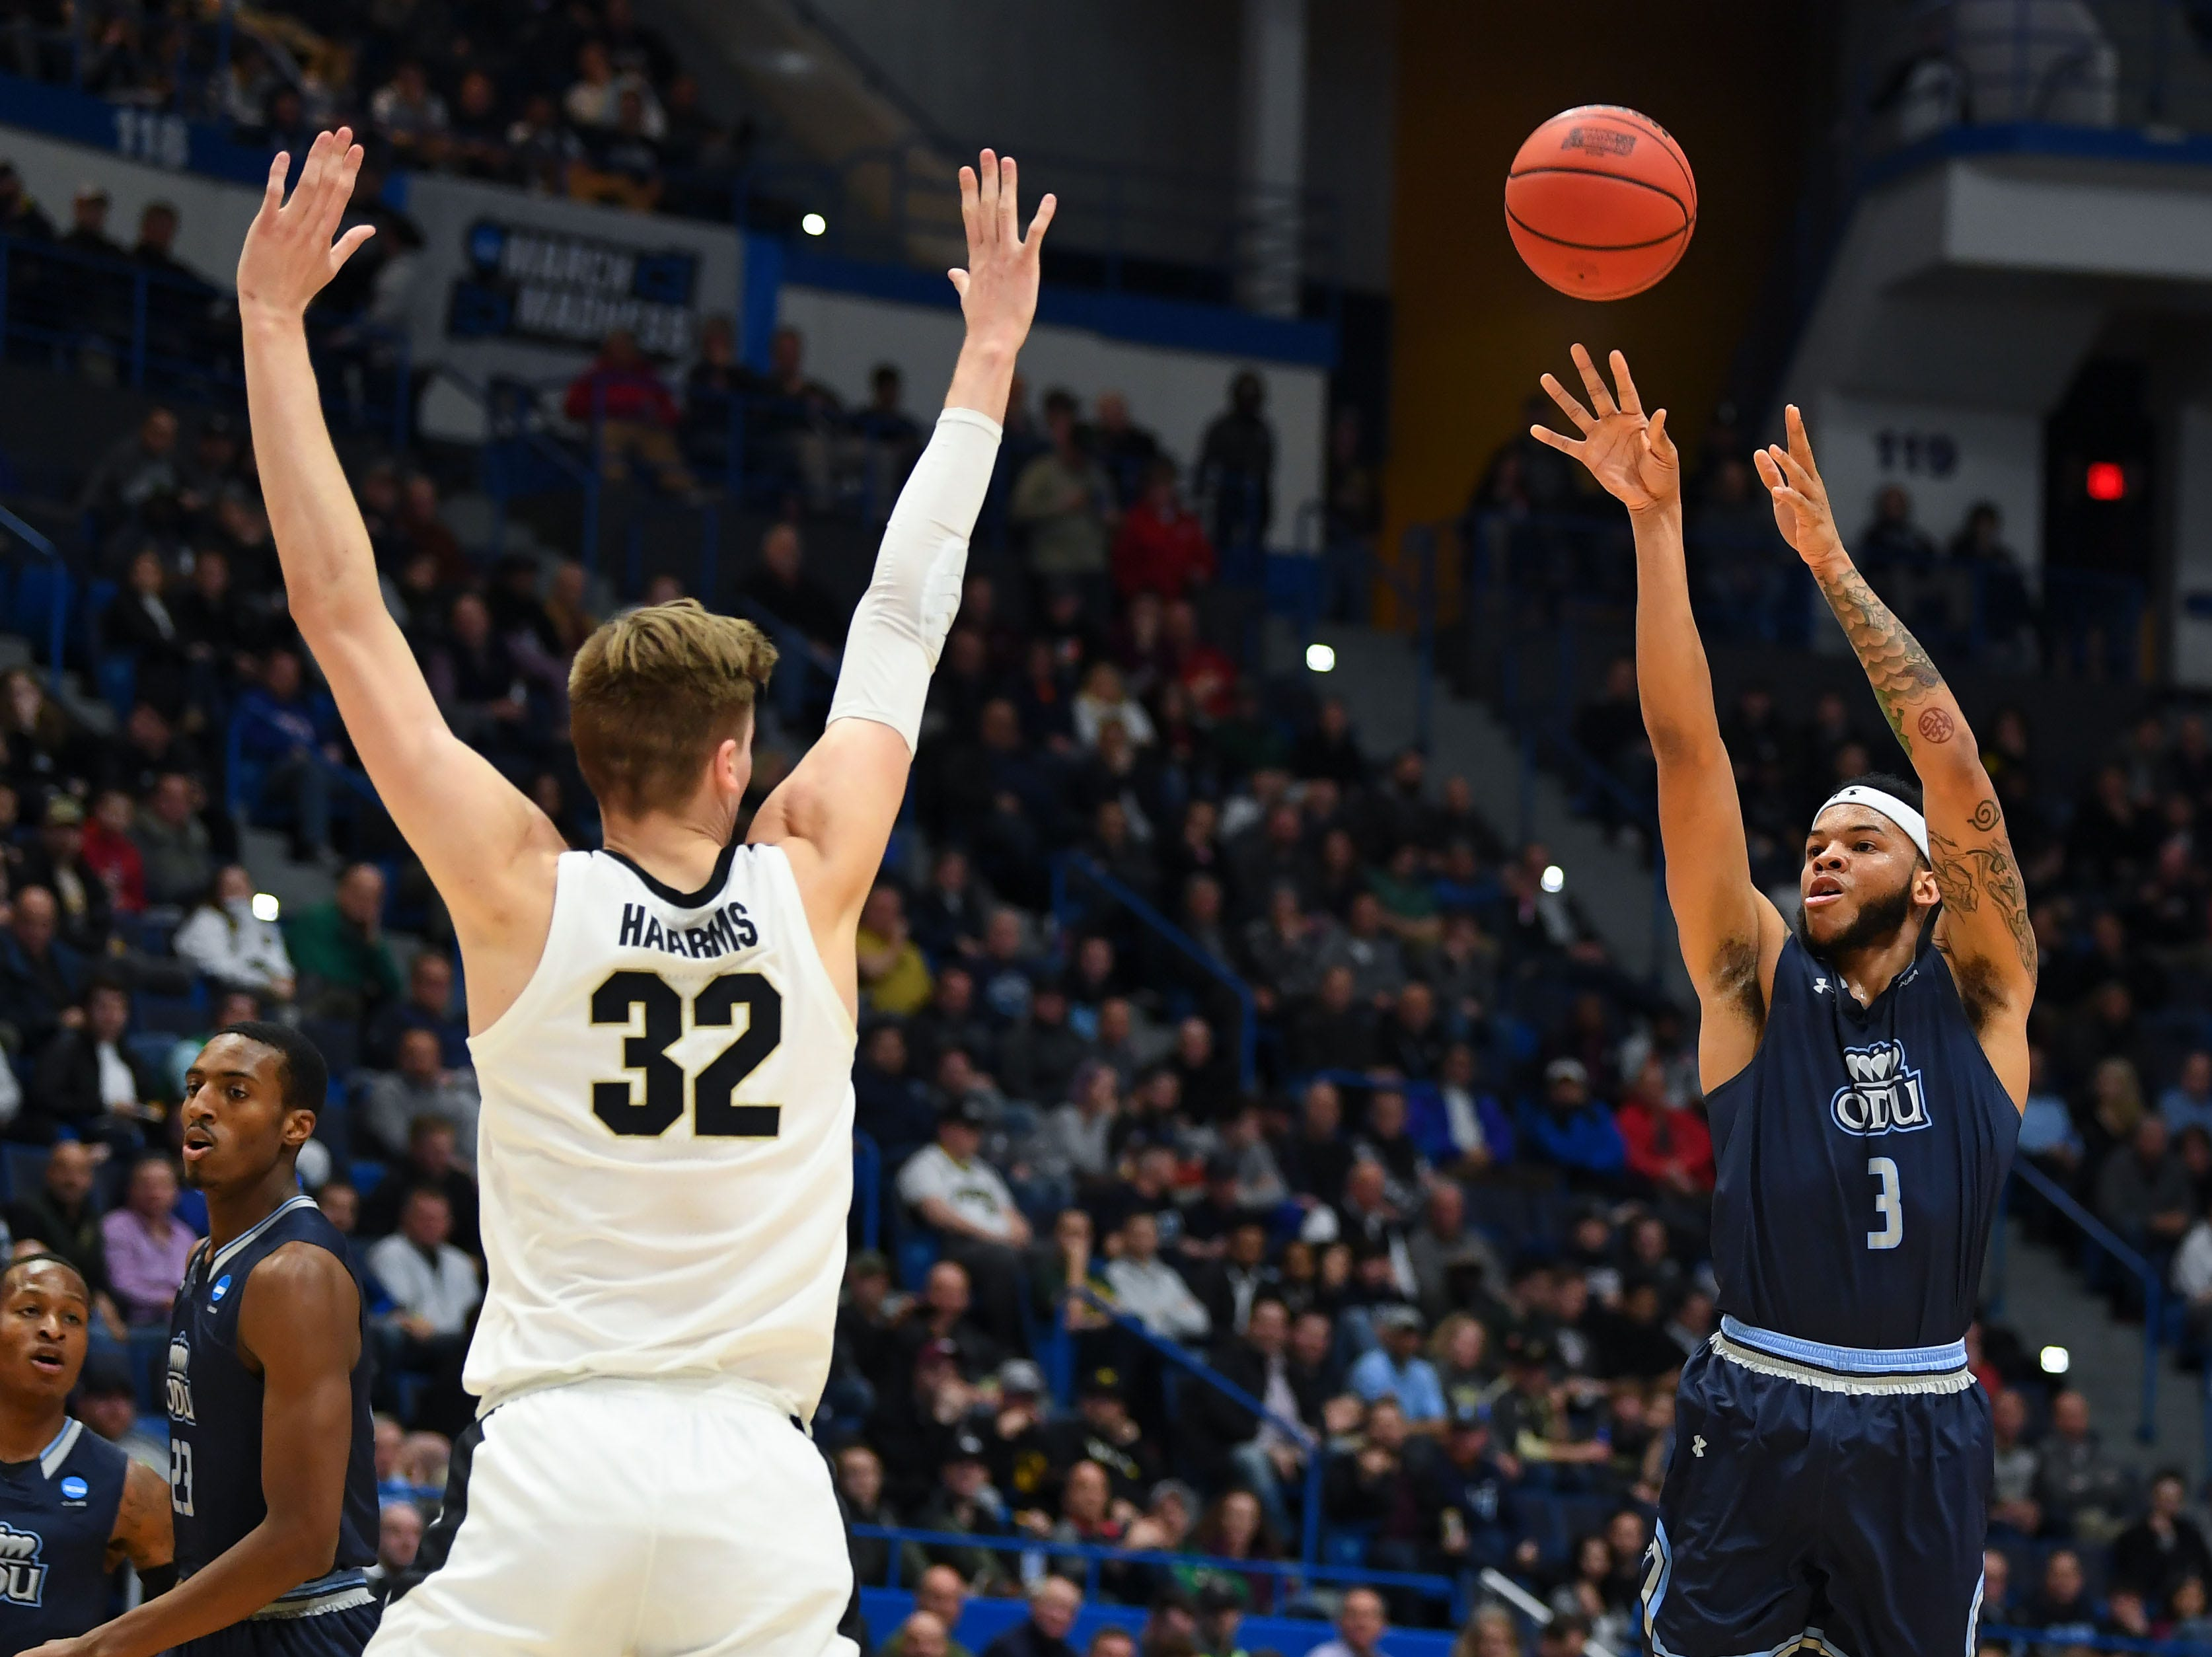 Mar 21, 2019; Hartford, CT, USA; Old Dominion Monarchs guard B.J. Stith (3) attempts a shot past Purdue Boilermakers center Matt Haarms (32) during the first half of a game in the first round of the 2019 NCAA Tournament at XL Center. Mandatory Credit: Robert Deutsch-USA TODAY Sports